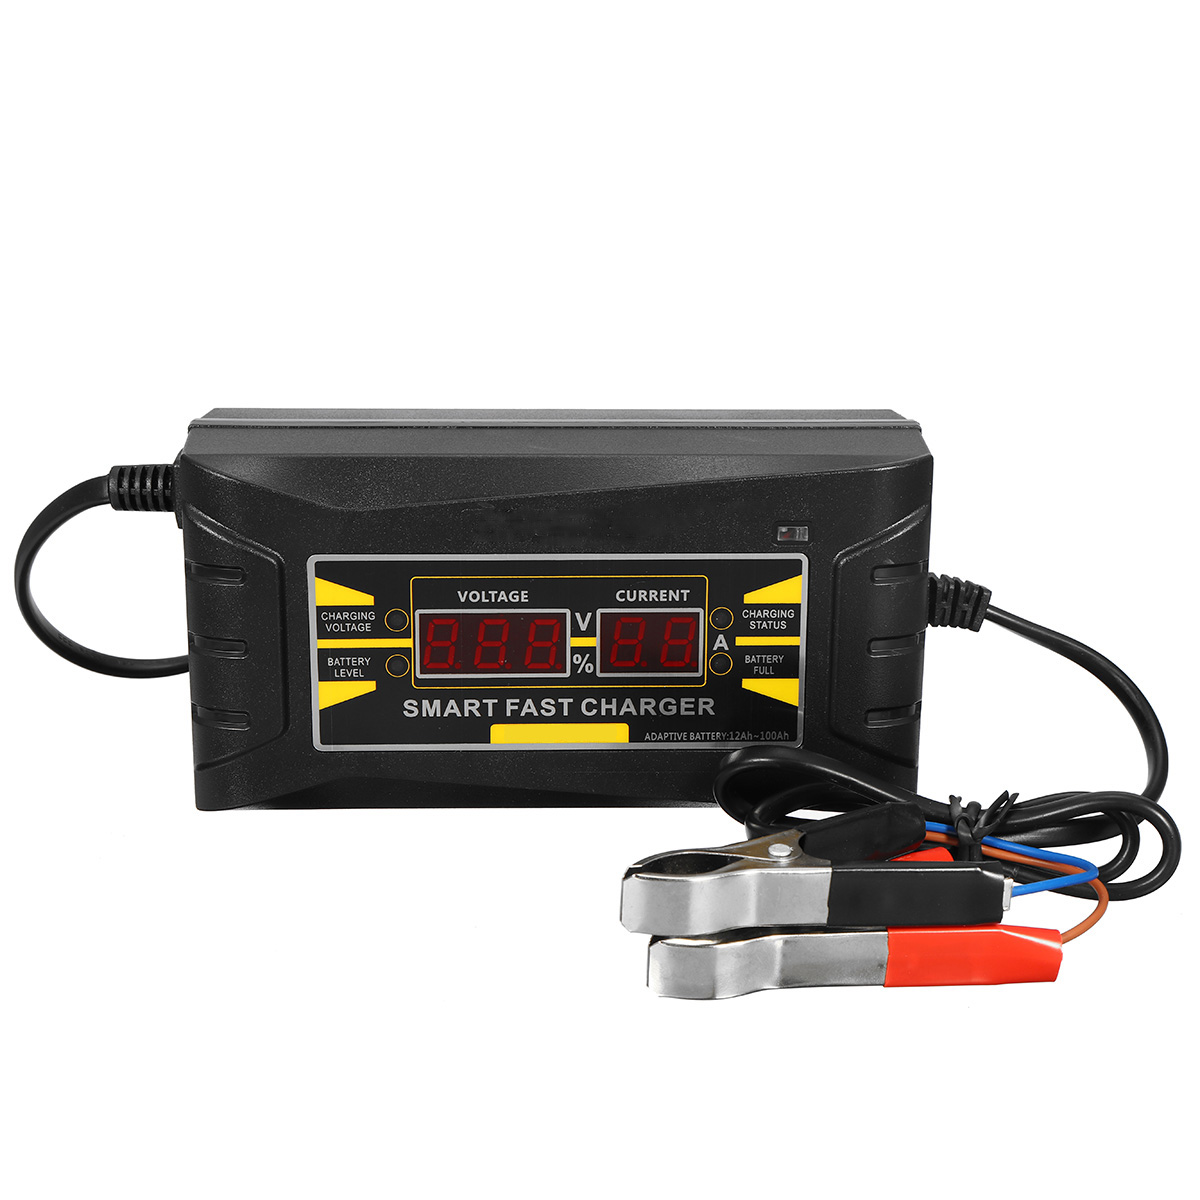 Full Automatic Car Battery Charger Smart Fast 110V/220V To 12V 6A Power Charging for Car Motorcycle Battery Charging UnitFull Automatic Car Battery Charger Smart Fast 110V/220V To 12V 6A Power Charging for Car Motorcycle Battery Charging Unit